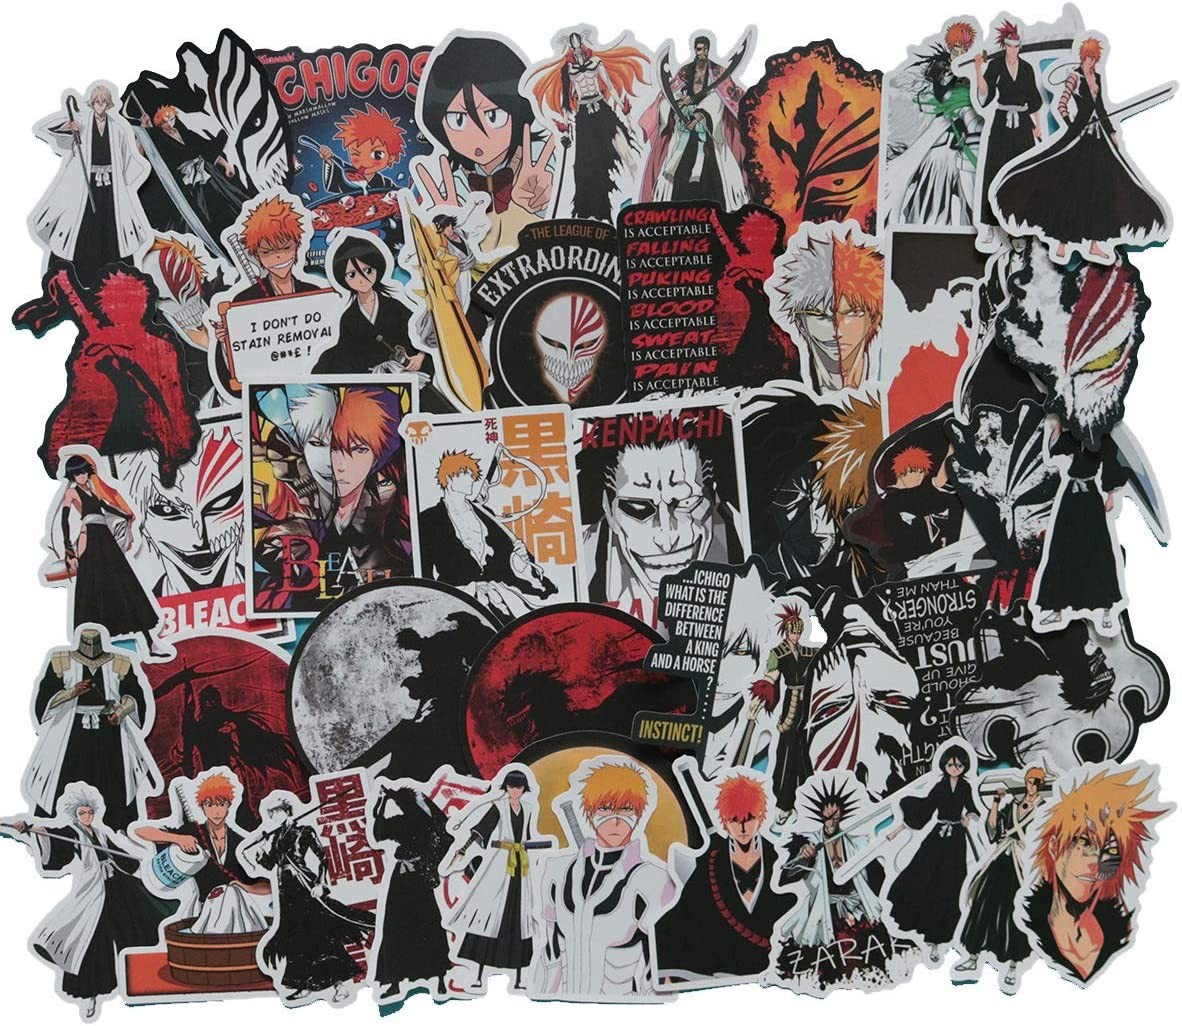 Bleach Anime Laptop Stickers Waterproof Skateboard Snowboard Car Bicycle Luggage Decal 50pcs Pack (Bleach)